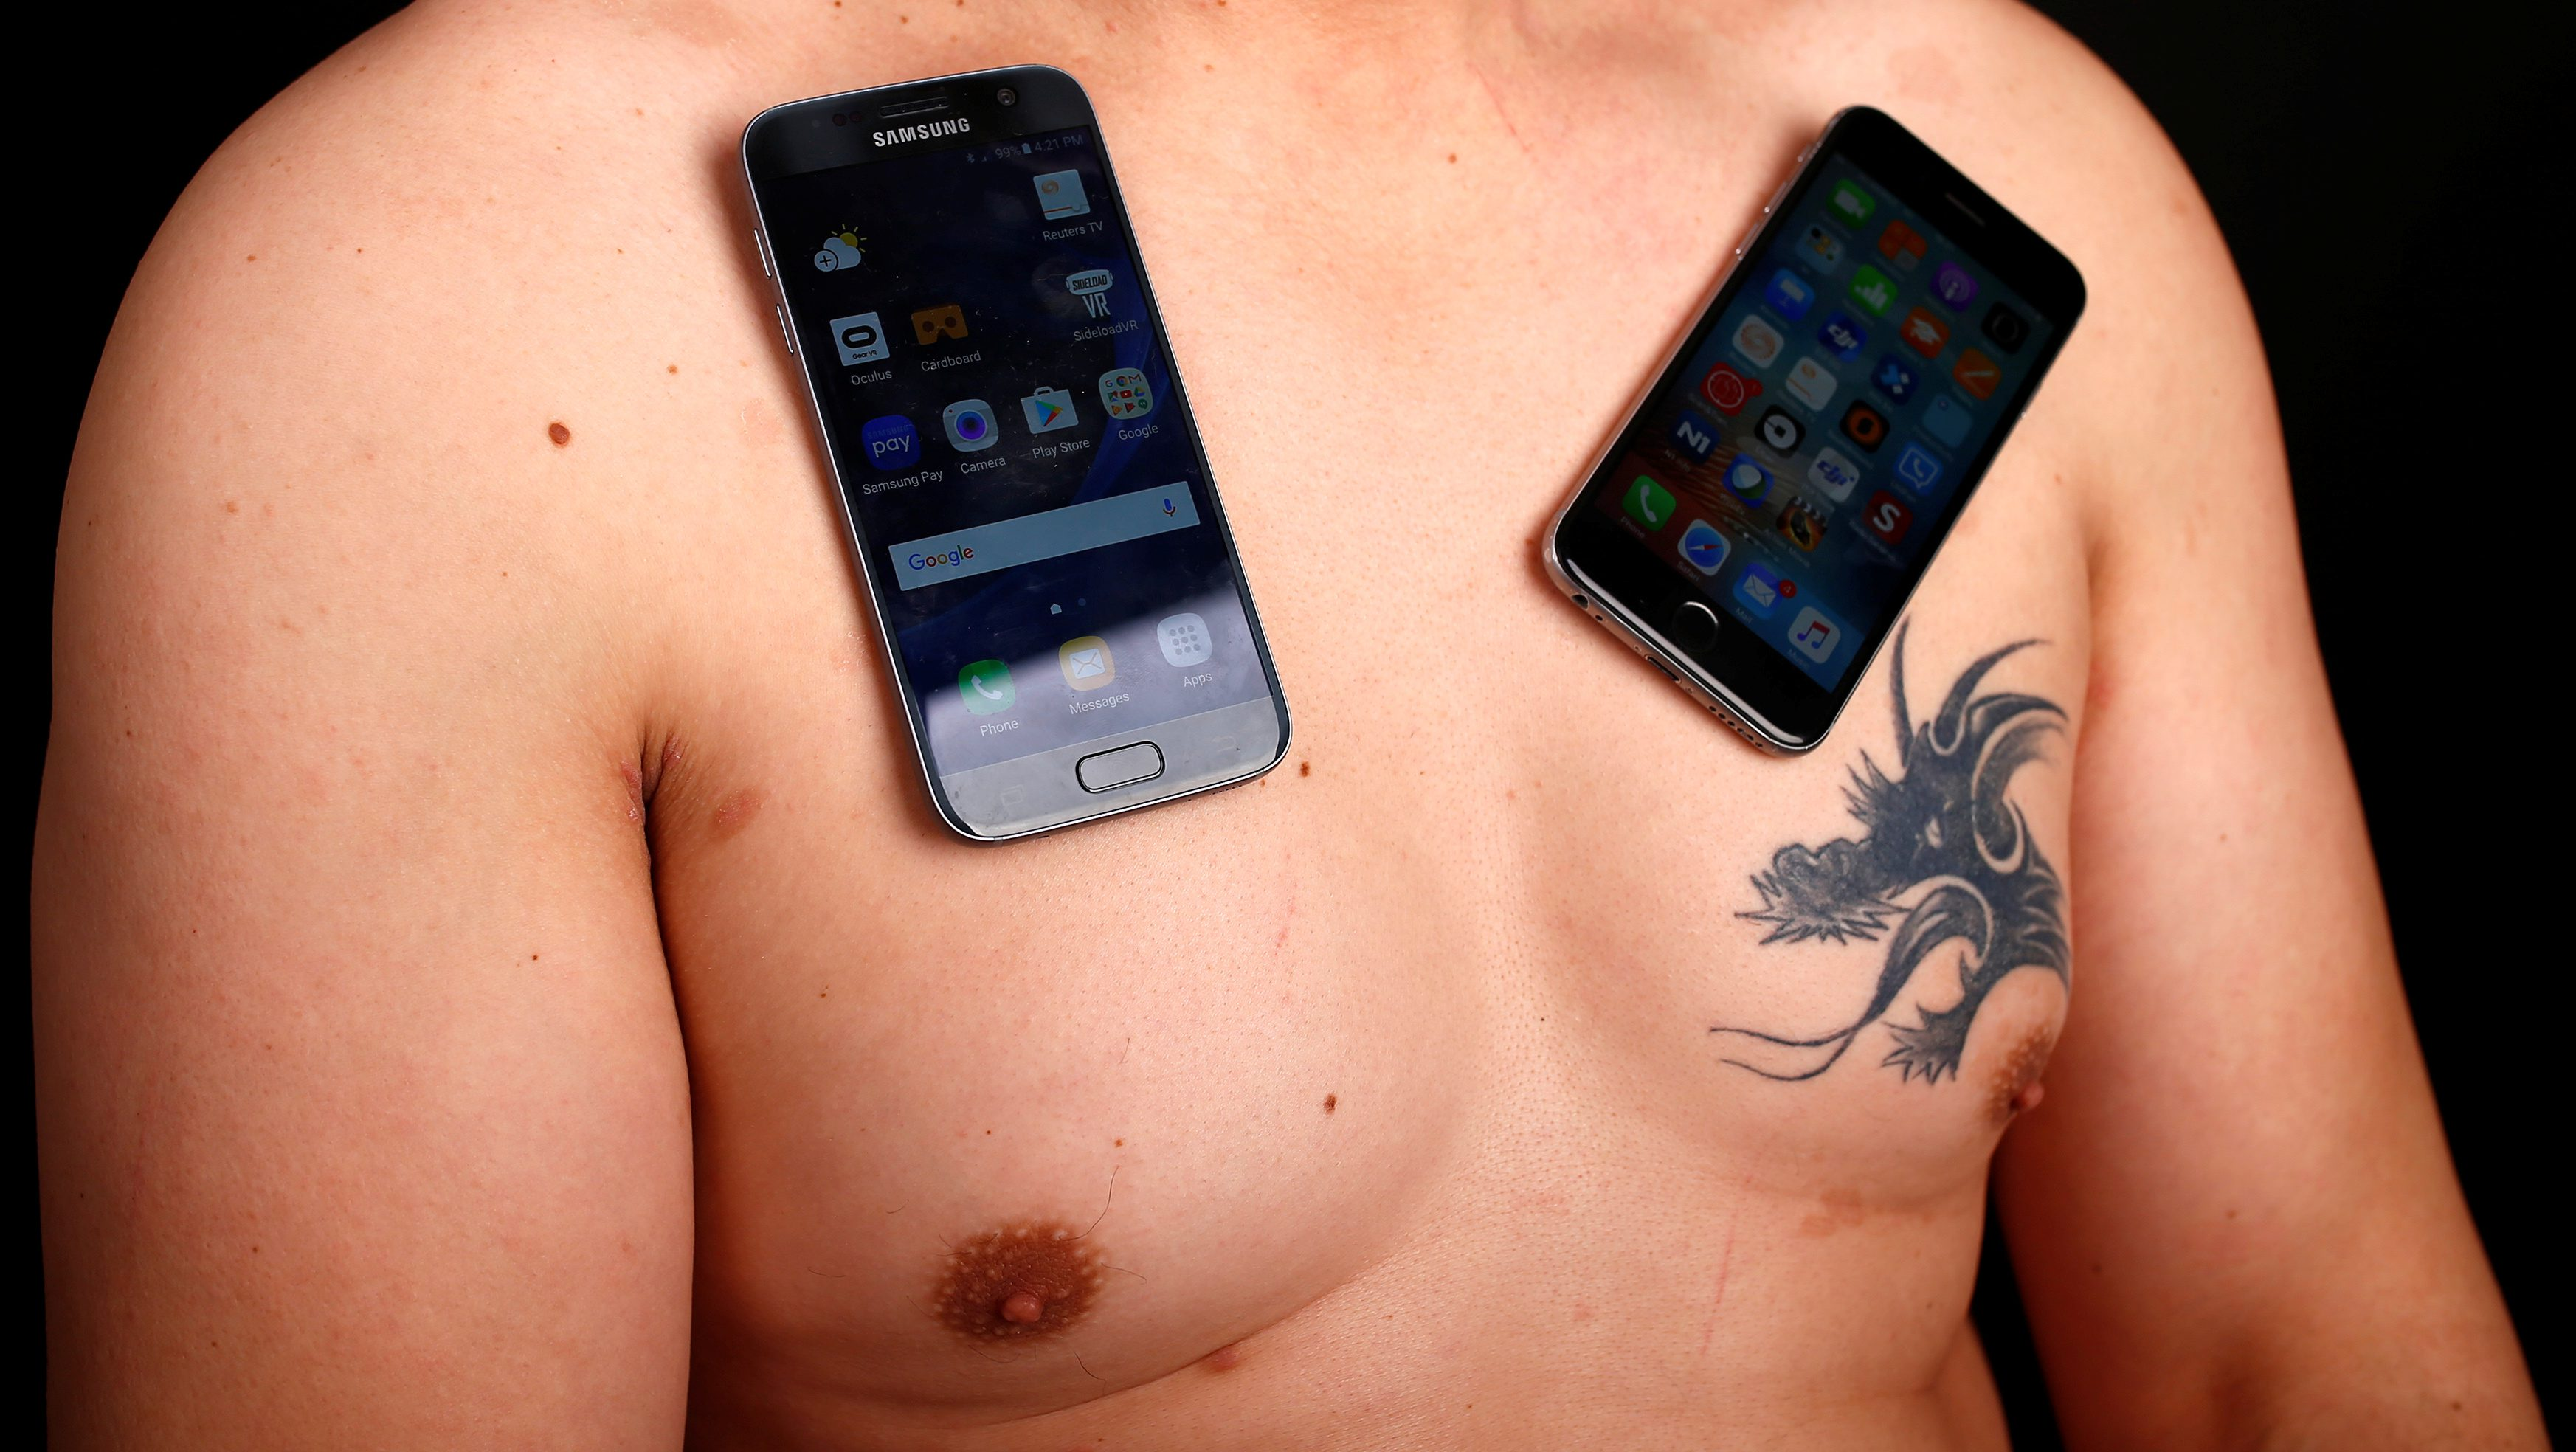 Nermin Halilagic, 38, poses with smartphones in Bihac, Bosnia and Herzegovina, January 23, 2017. Halilagic discovered earlier this year that he had the unusual ability to attach items to his body using what he says is a special energy radiated from his body. Without making any special preparation, he says he is able to hold on to spoons, forks, knives, and other kitchen appliances, as well as non-metal objects like remote controls, all plastic stuff, and cell phones. Picture taken January 23, 2017. REUTERS/Dado Ruvic - RTSX4HV